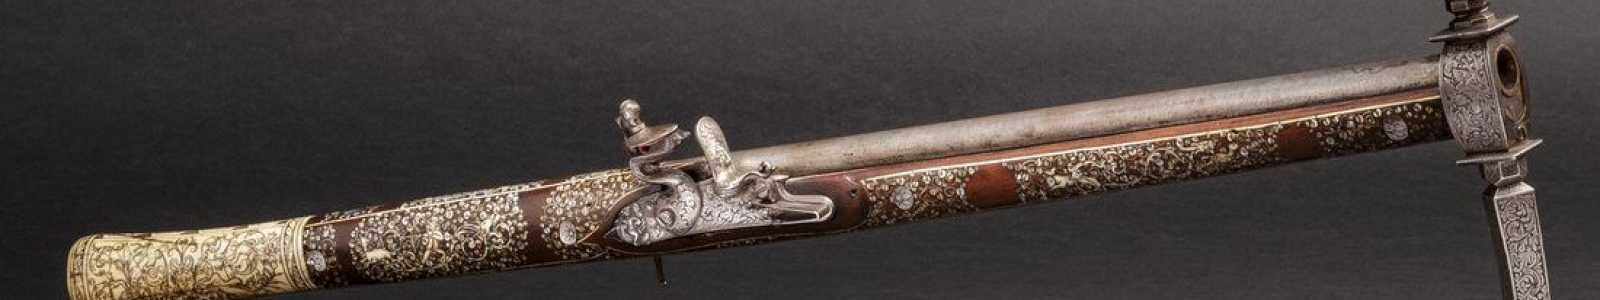 A82d - The collection of J. Durval – Antique firearms